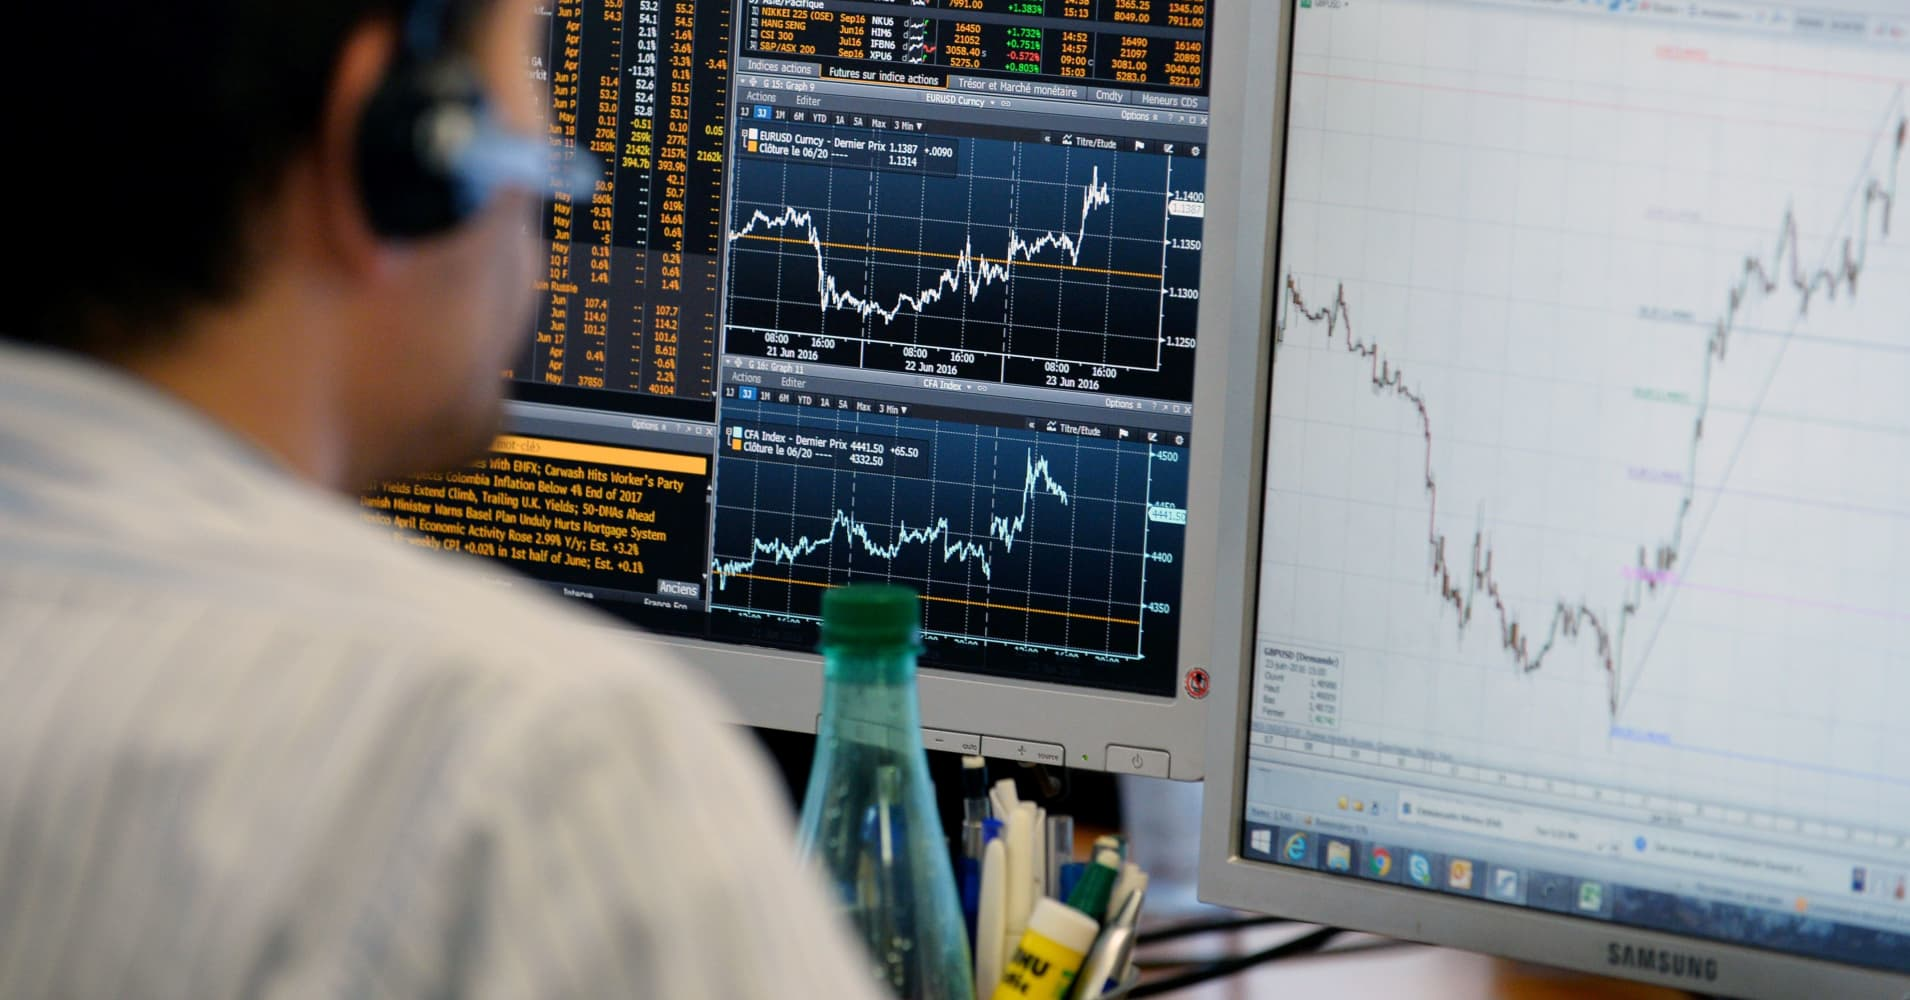 Europe seen lower as geopolitical concerns weigh; oil eyed